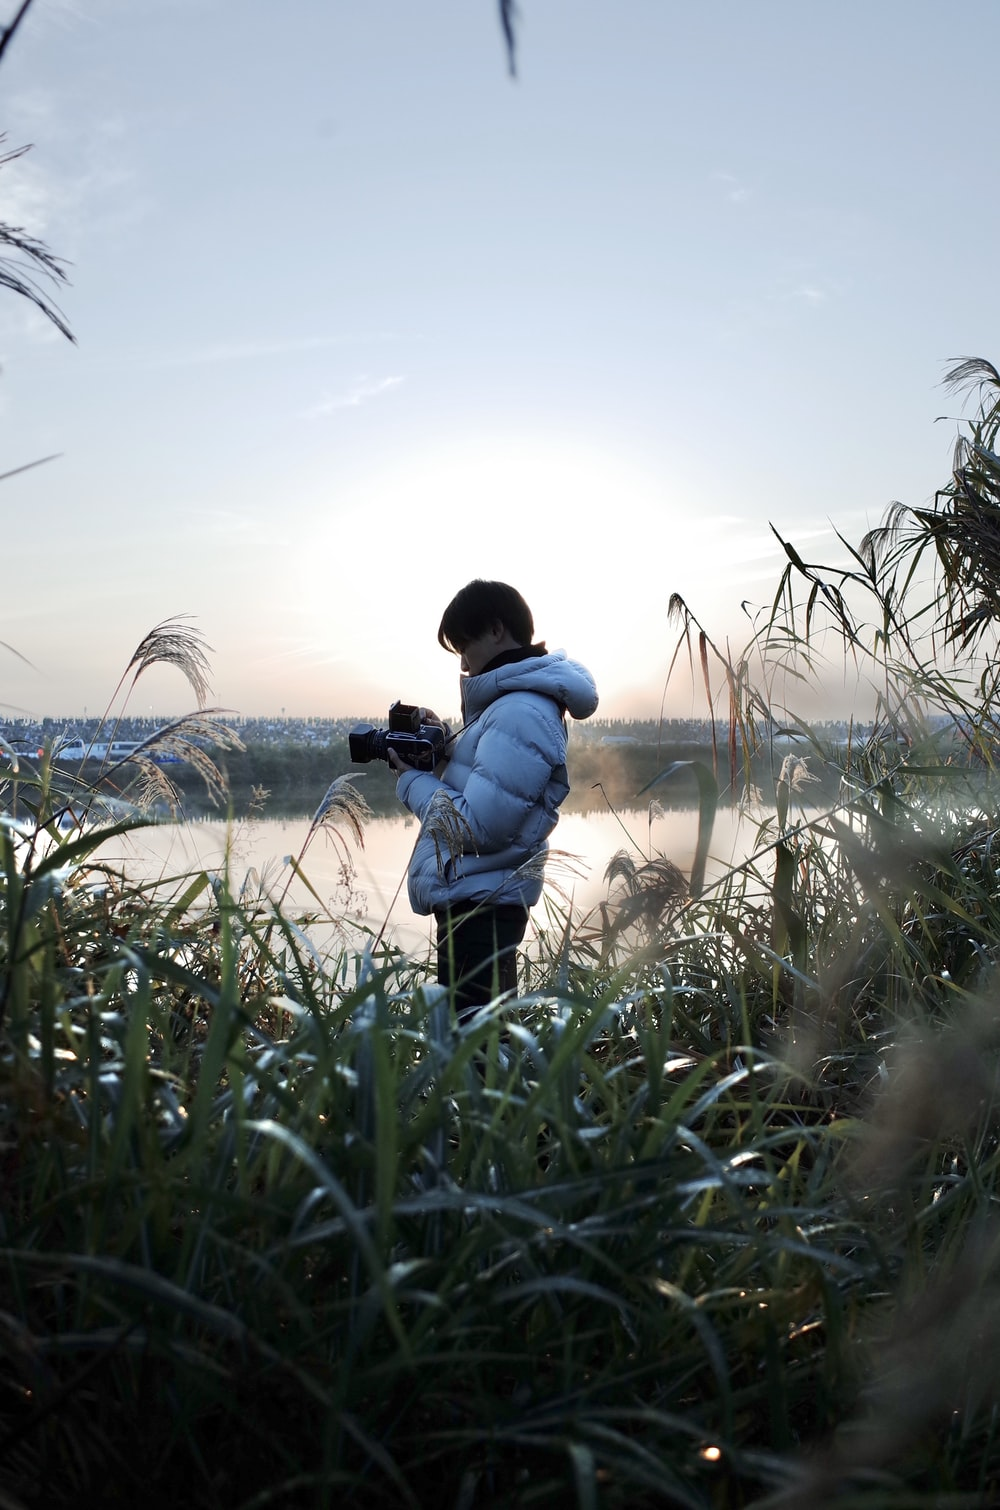 man in blue jacket and black pants holding black dslr camera standing on green grass field